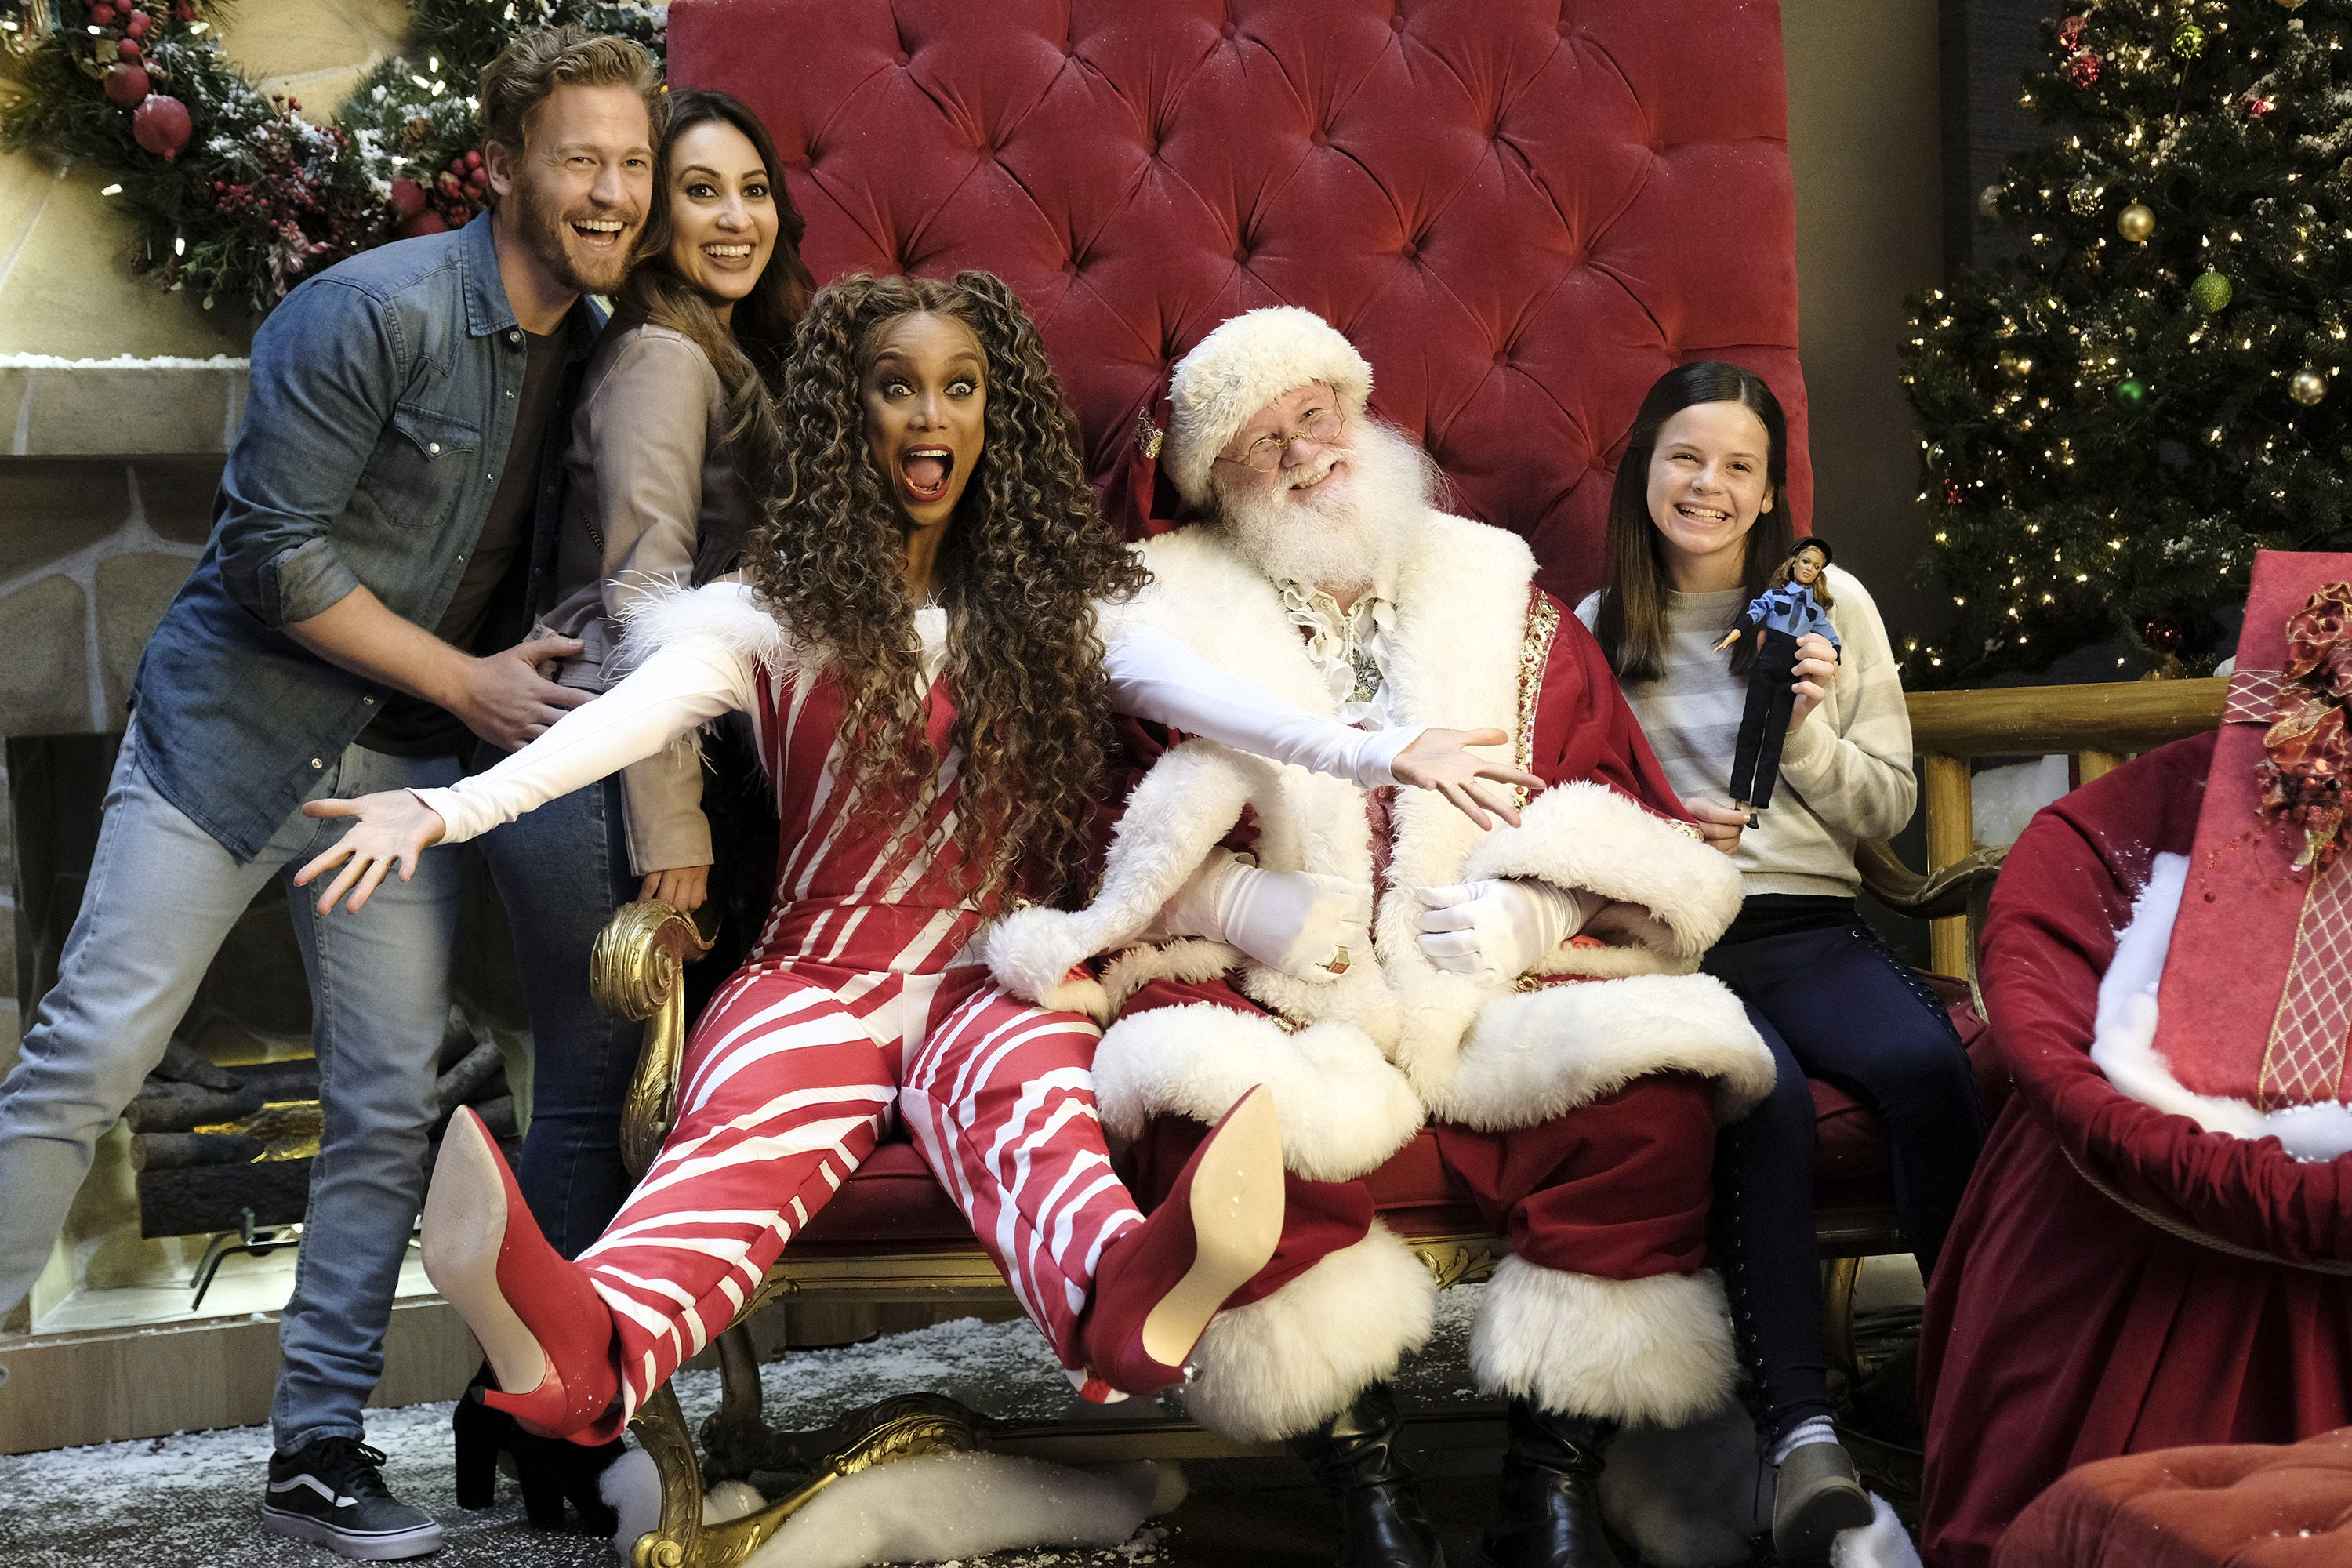 Freeform 25 Days Of Christmas 2021 Schedule The Full Schedule For Freeform S 2018 25 Days Of Christmas Features Life Size 2 And Disney Classic Films